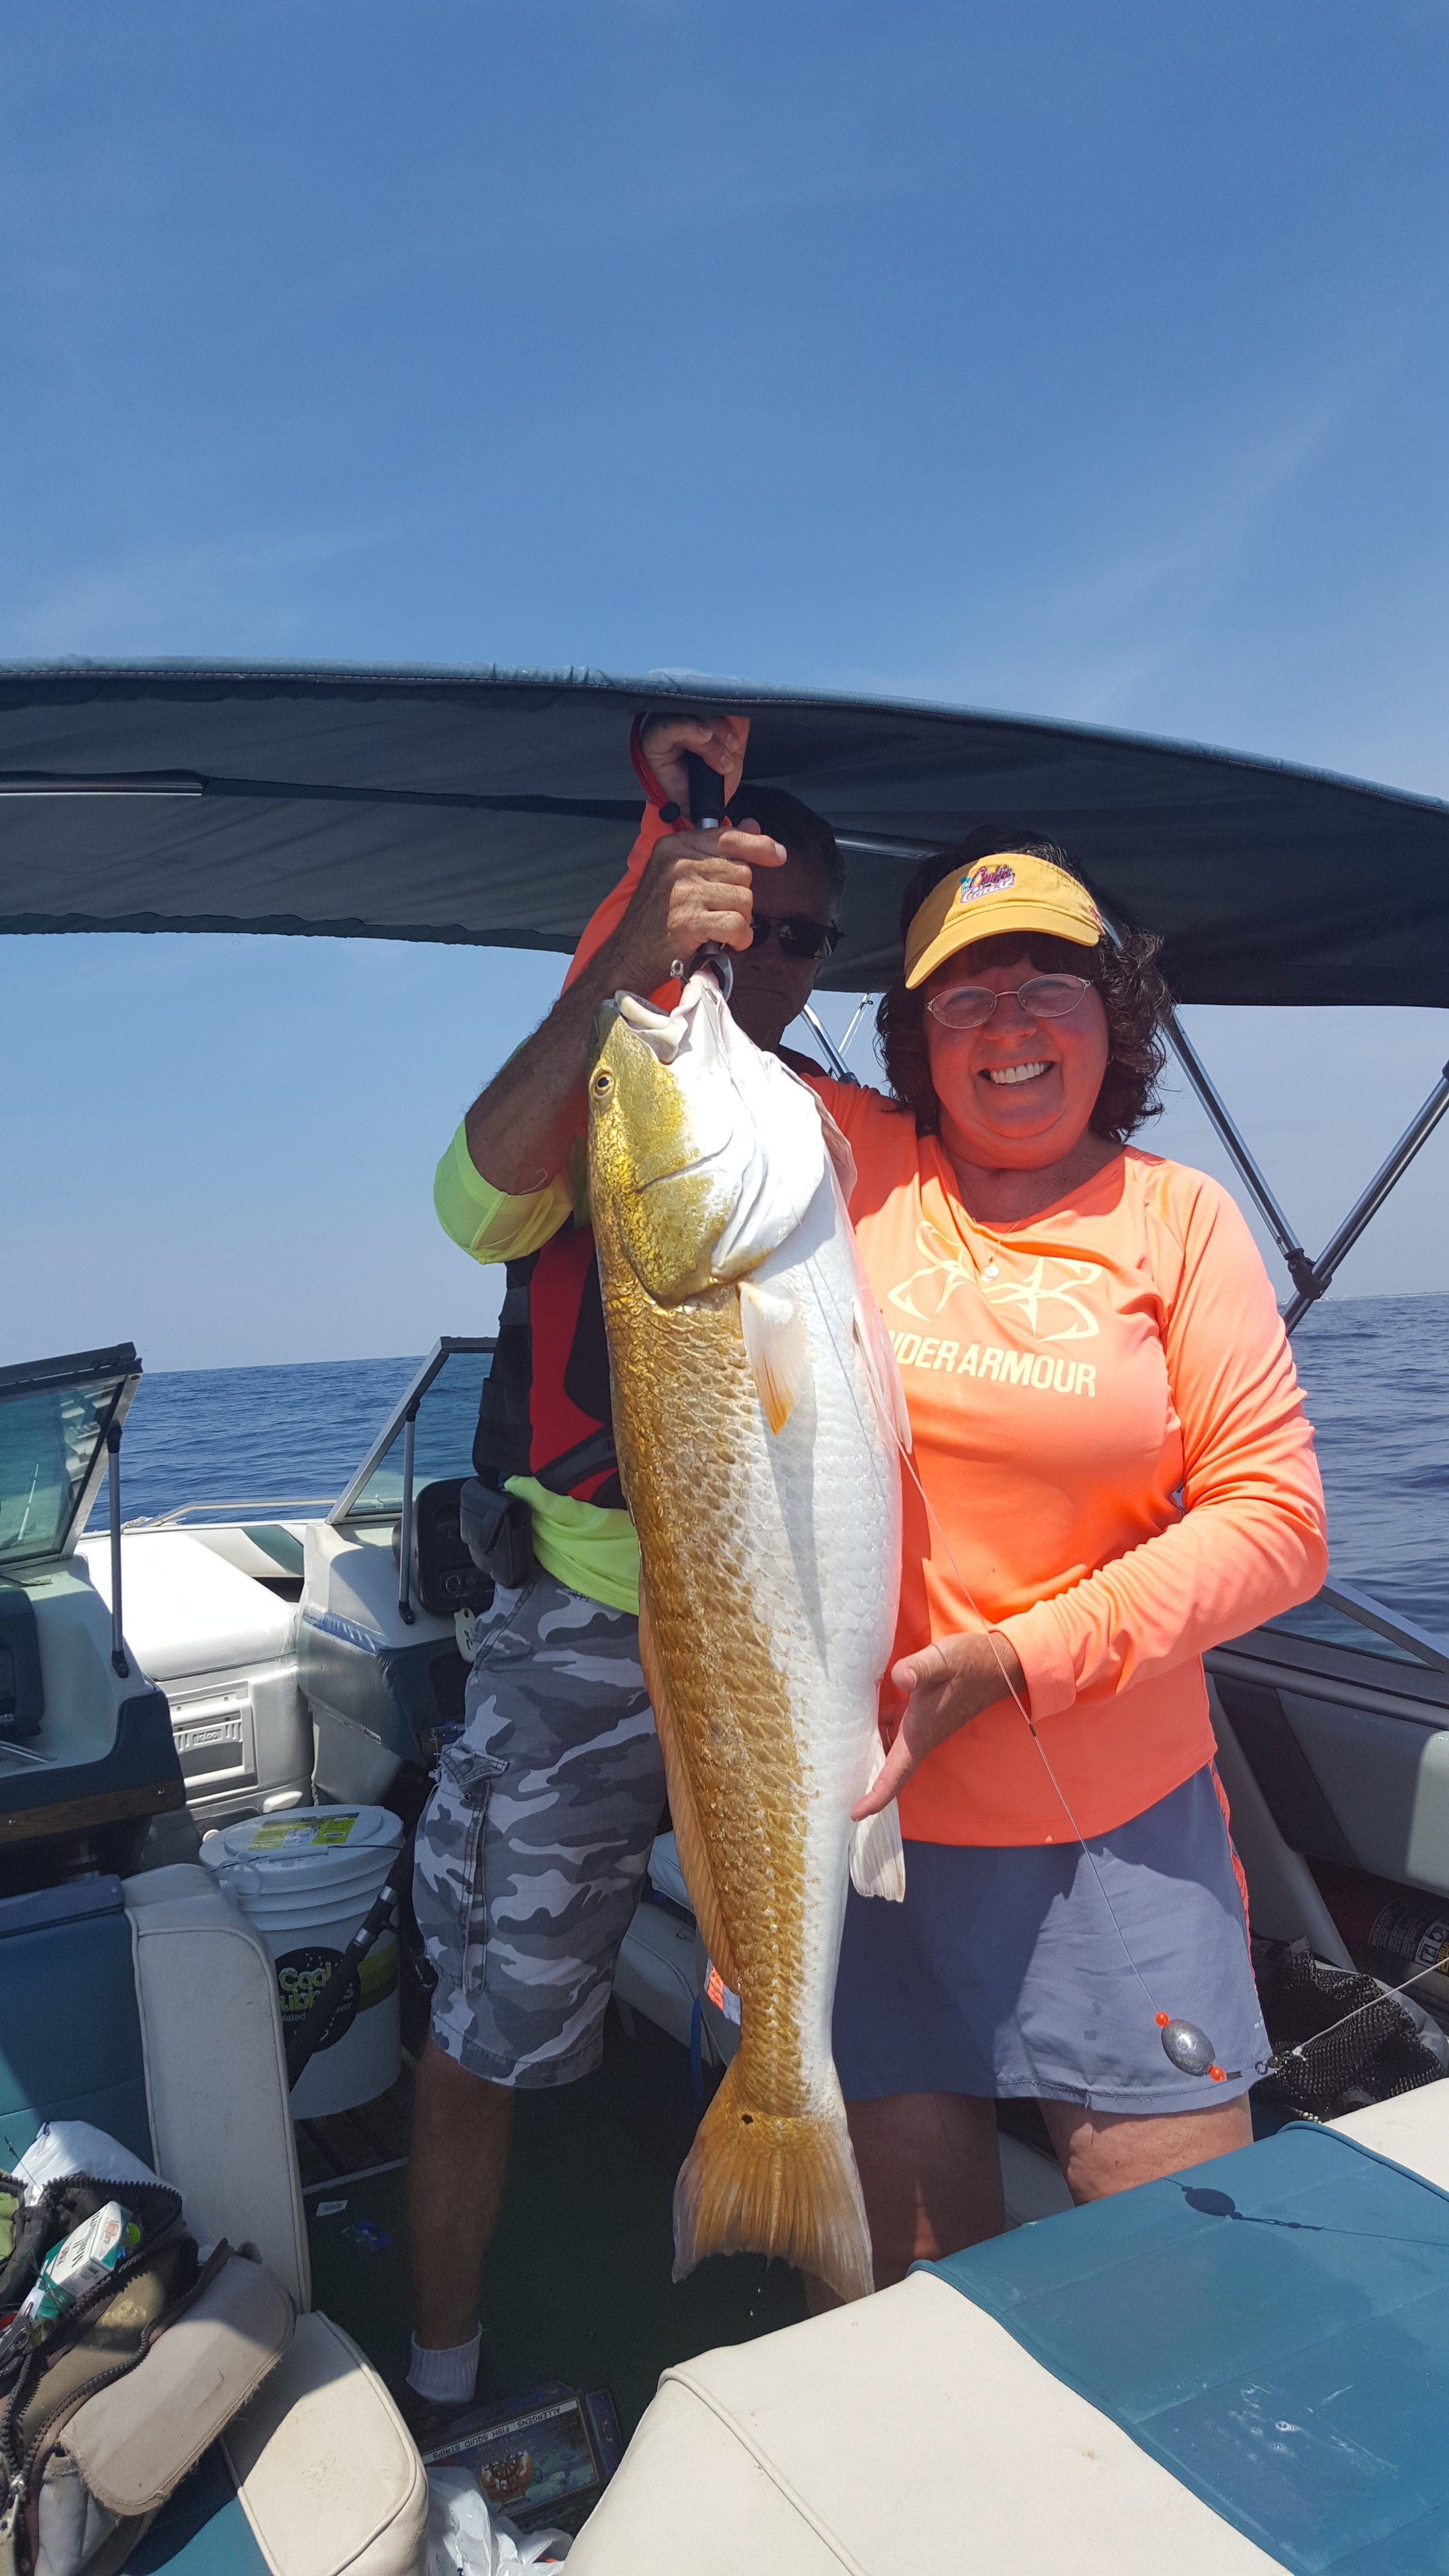 """Just east of the Destin Pass, Ruth Stokes of Baker pulled in a 35-inch, 25-pound redfish Aug. 25. """"Everyone thought I had hung on the bottom; I was exhausted,"""" Stokes said. """"He was over the slot limit and was released in good shape. Biggest fish I ever caught."""""""